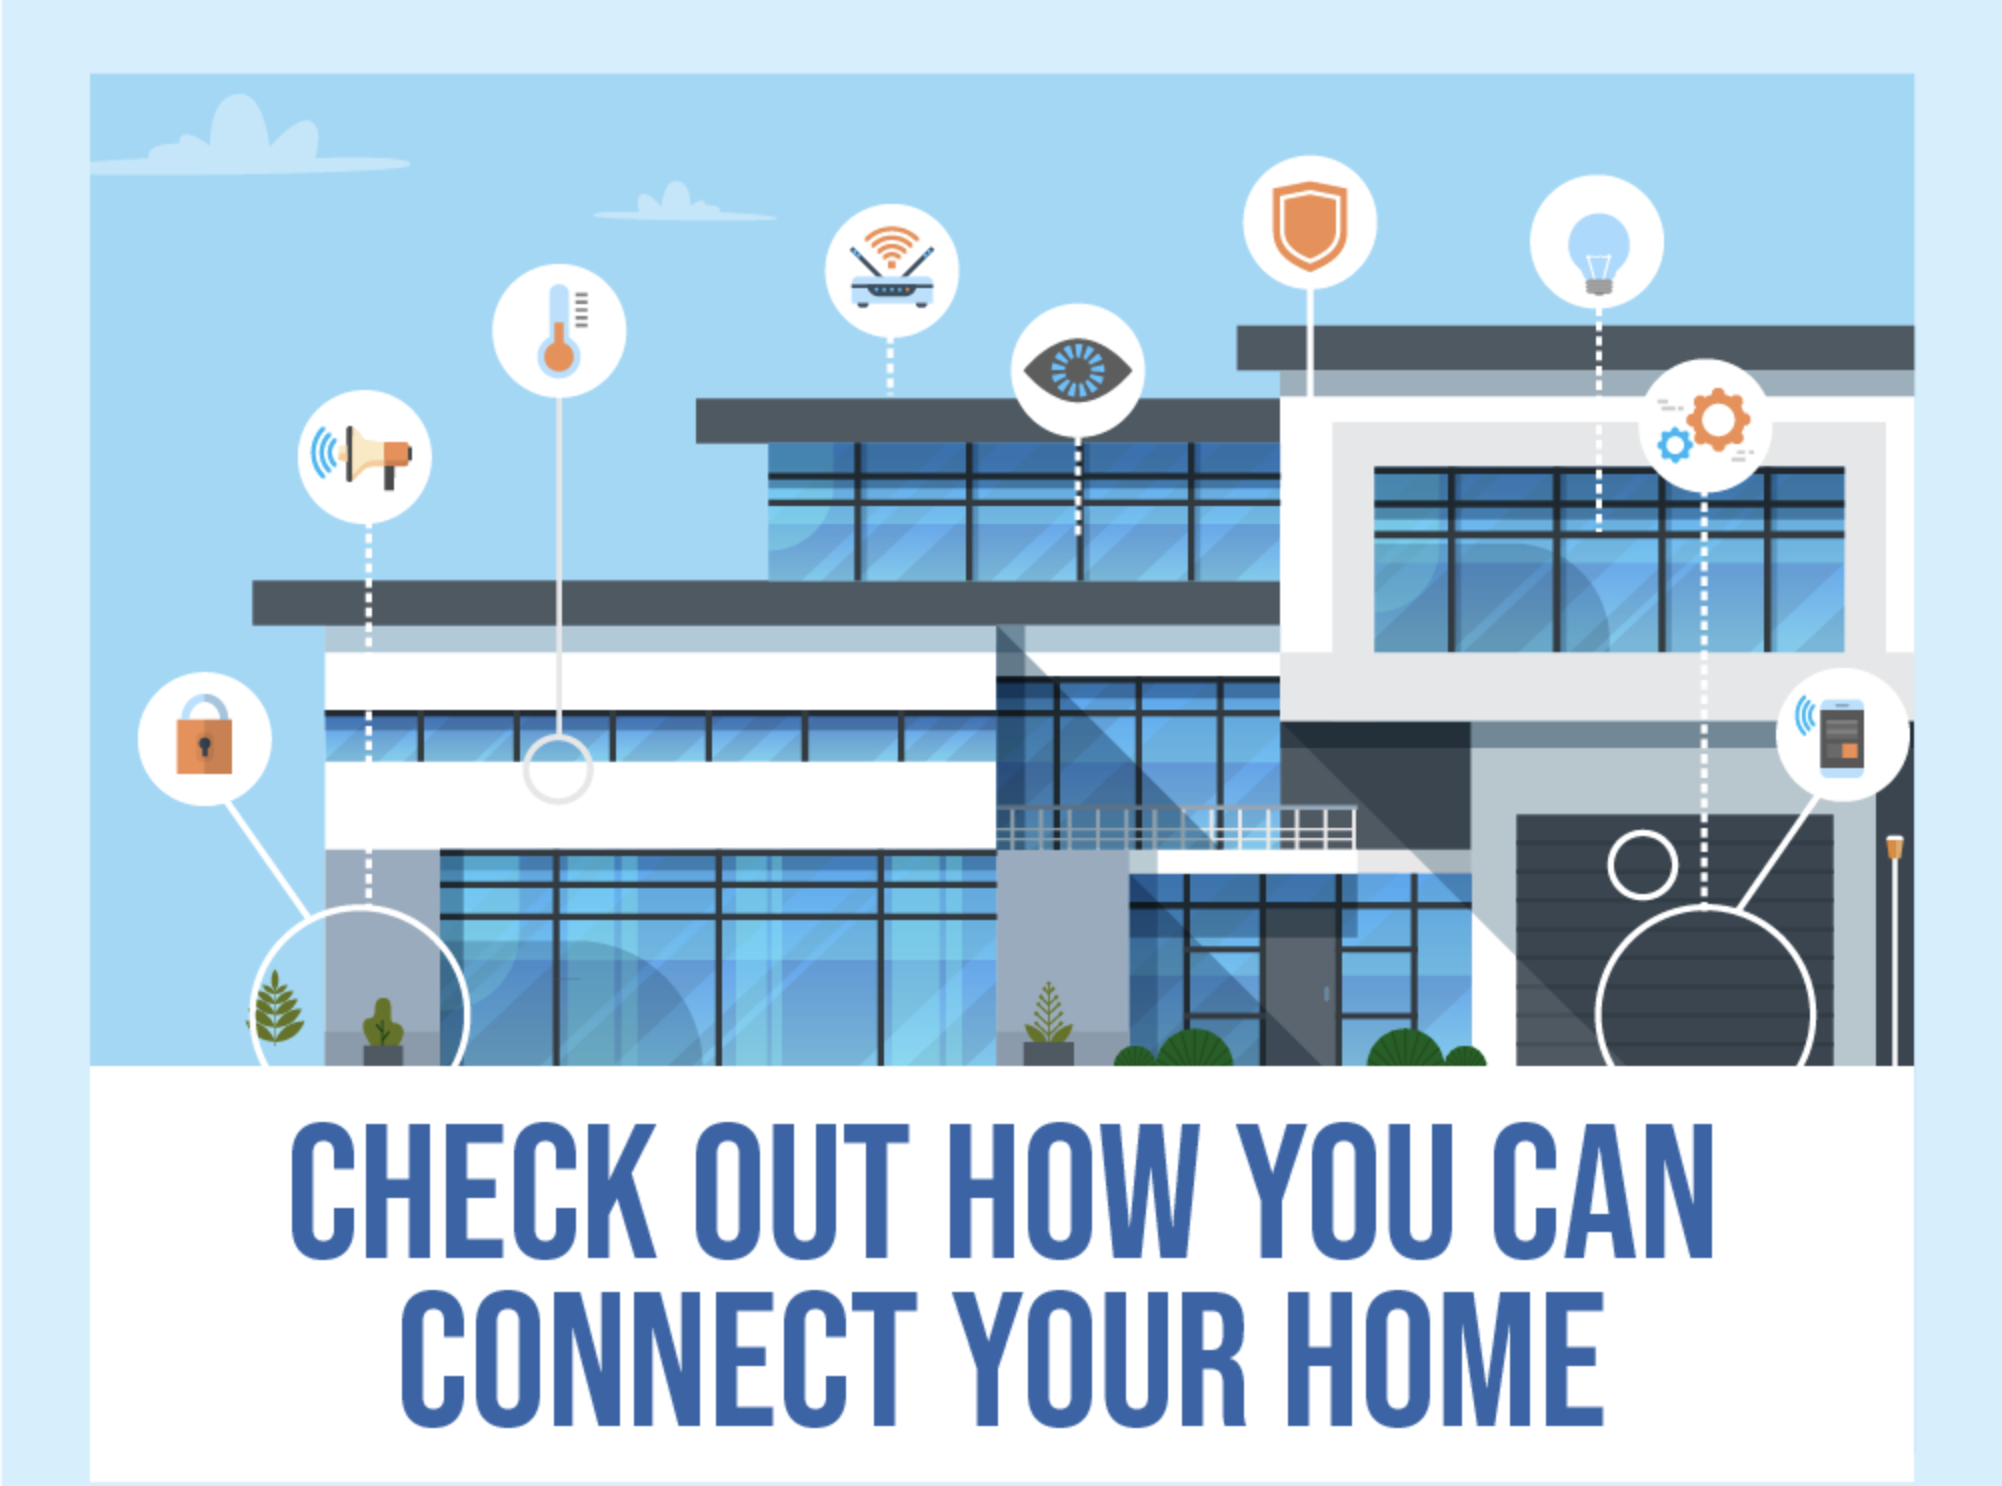 Check Out How You Can Connect Your Home